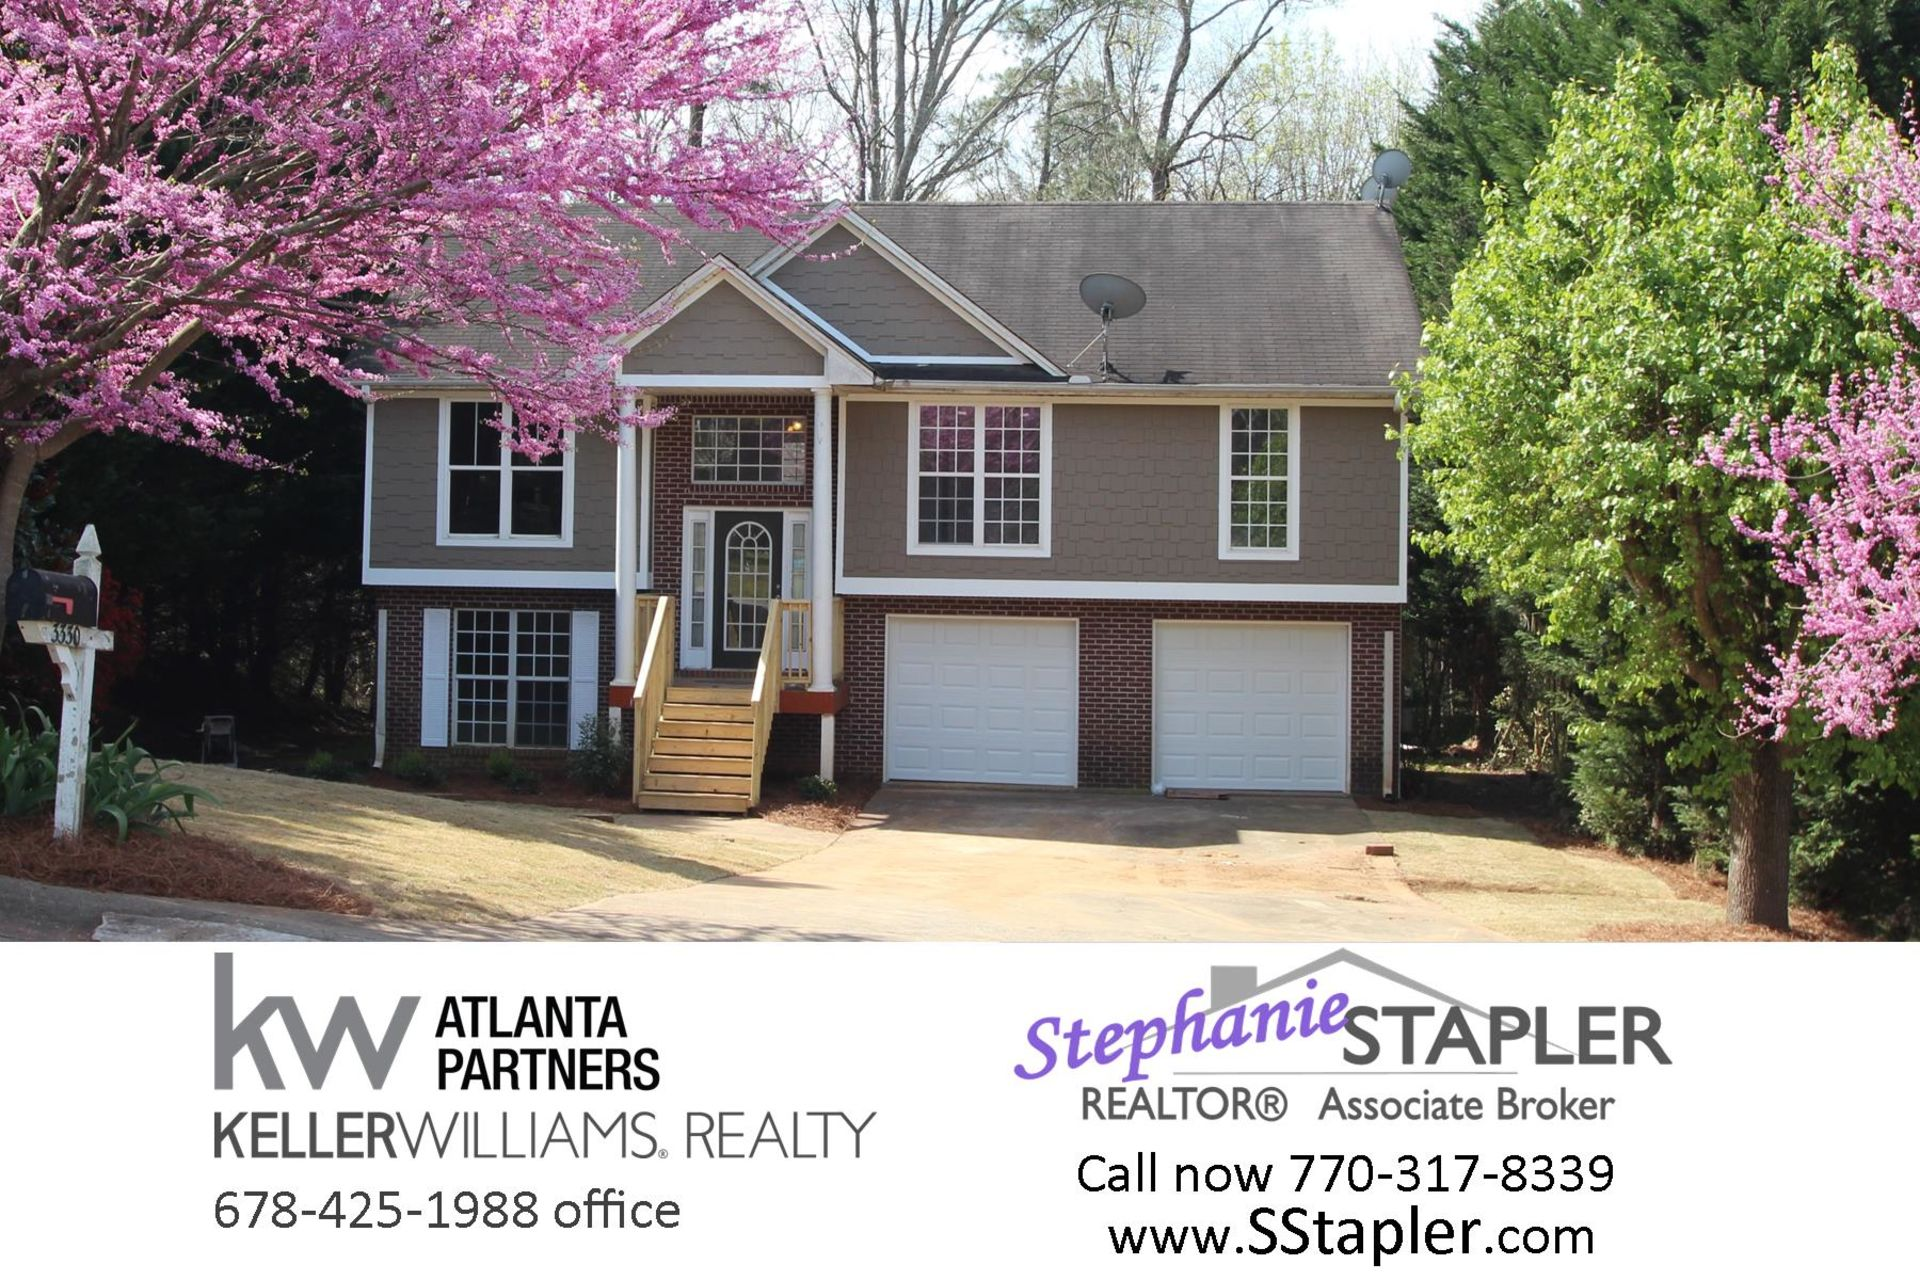 HOME FOR SALE Gainesville GA 5bd / 3ba & Stubbed for 2nd Kitchen